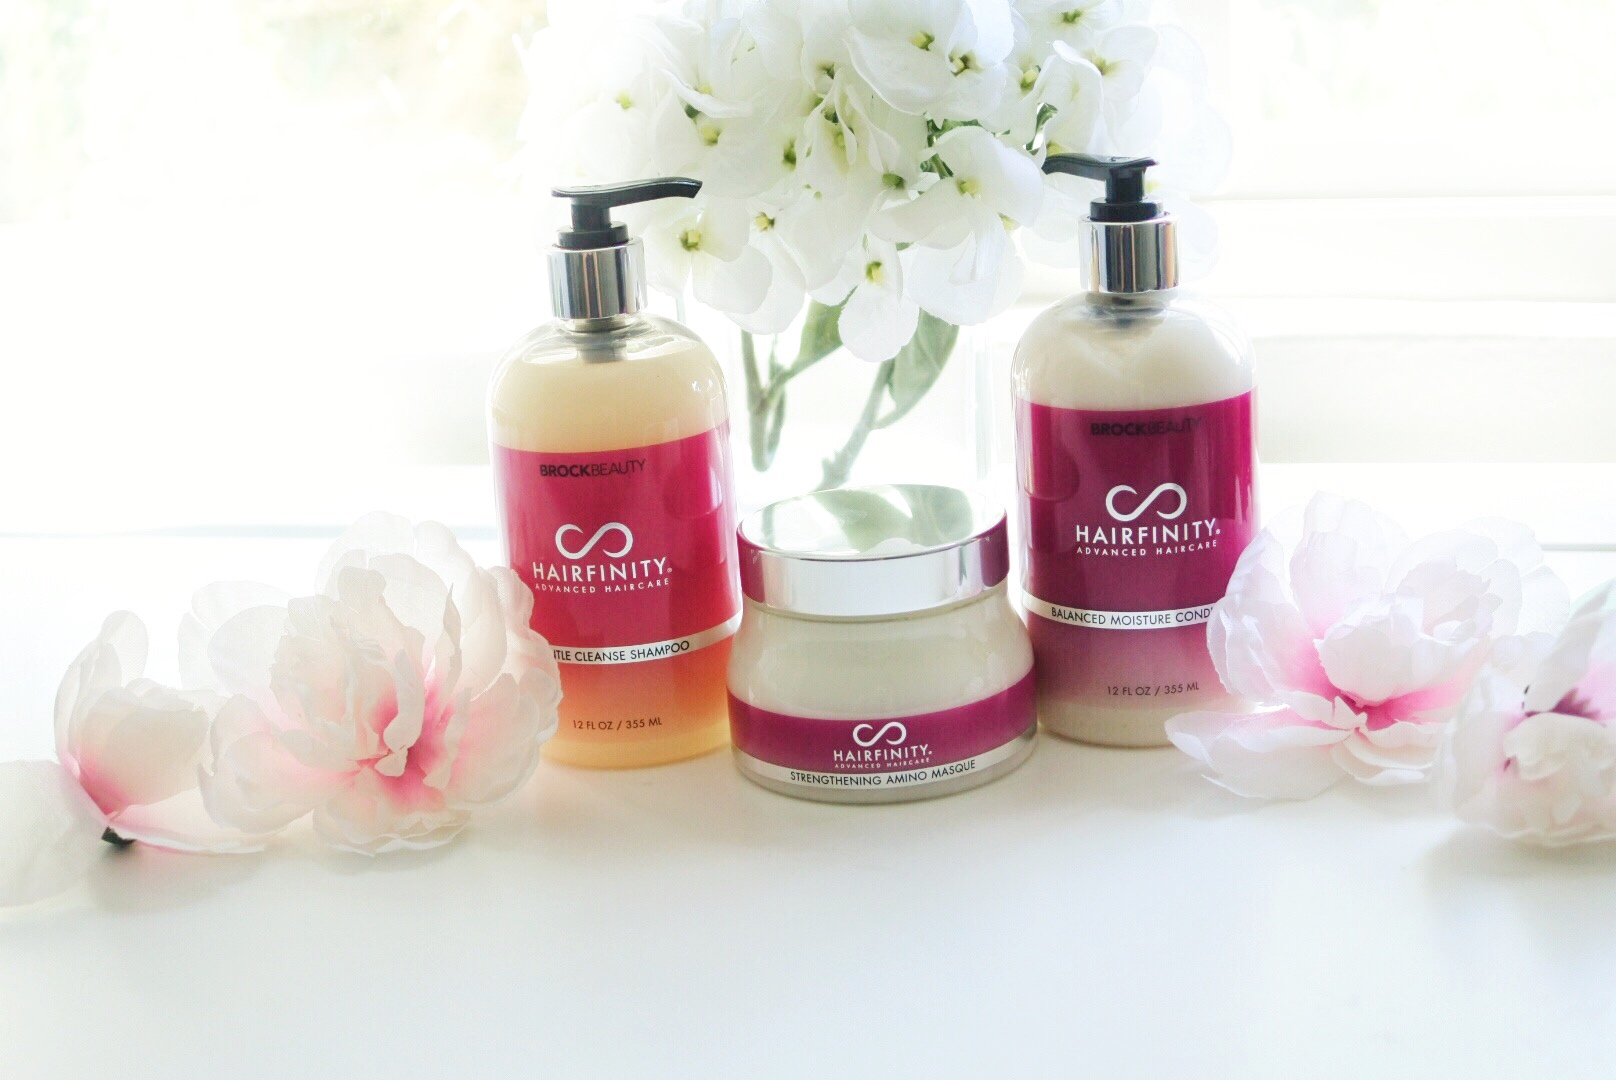 Hairfinity Balance Moisture Conditioner, Gentle Cleanse Shampoo, and Strengthening Amino Masque